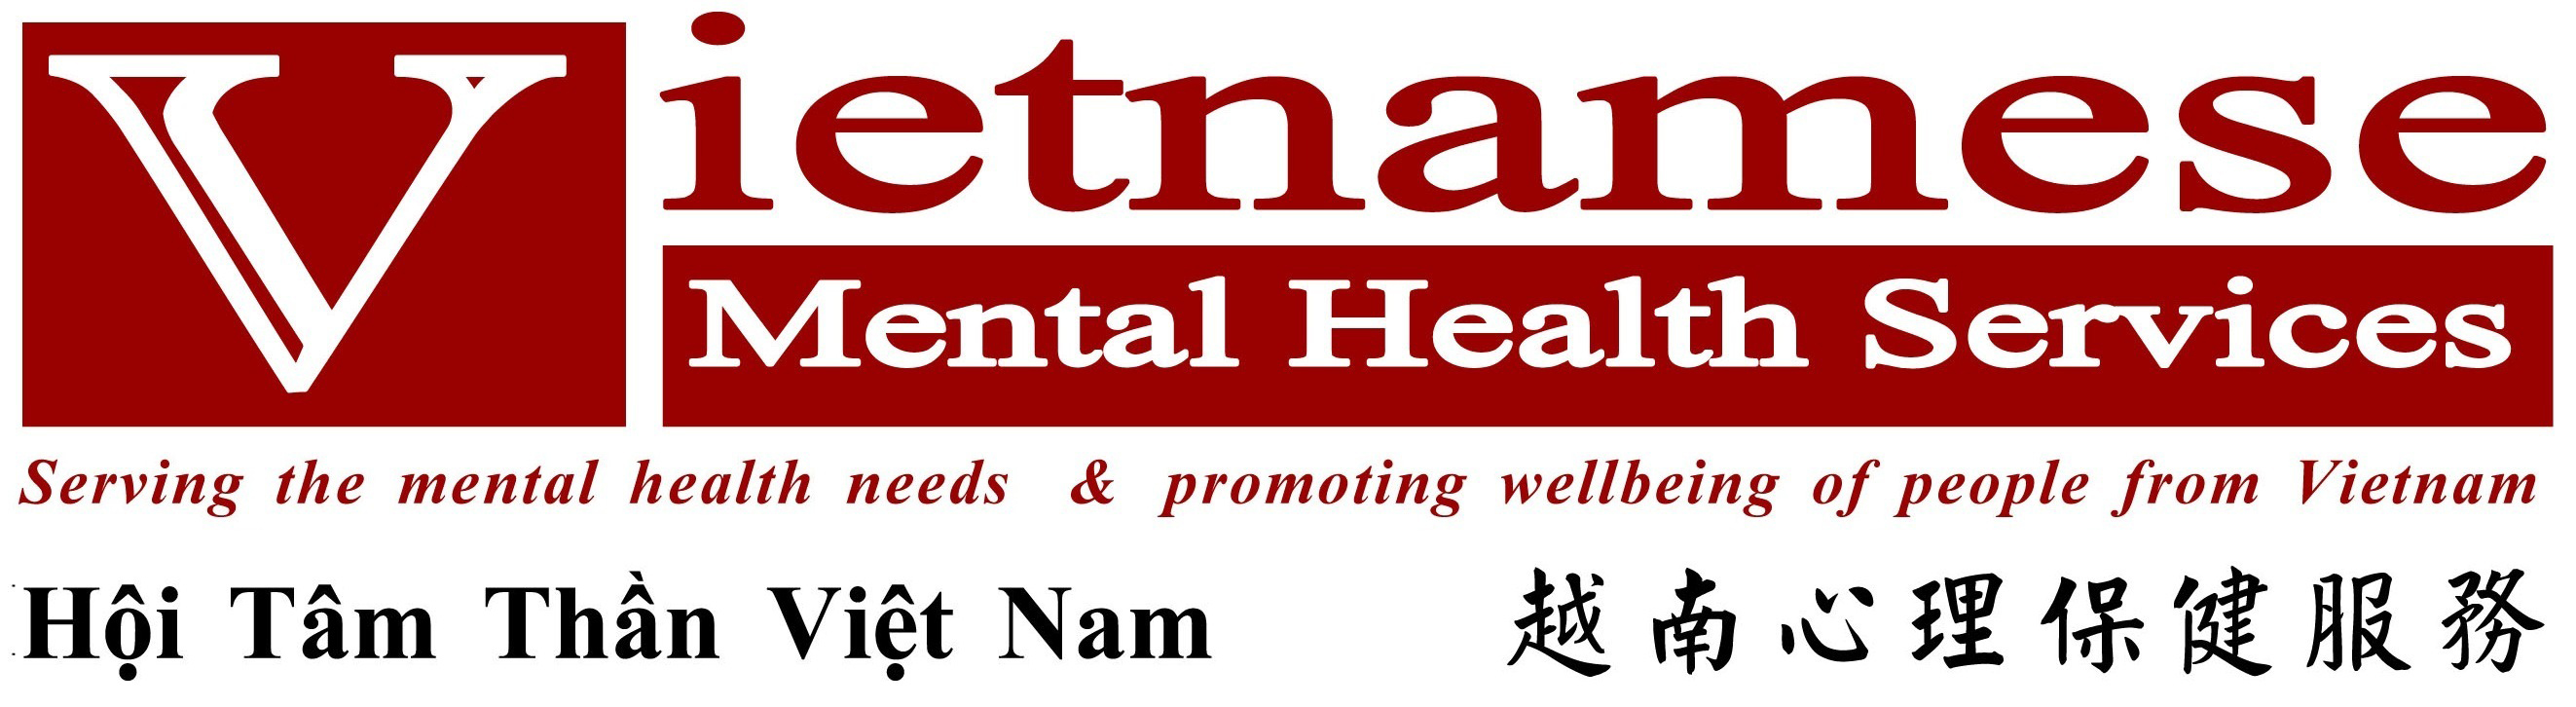 Vietnamese Mental Health Services Logo